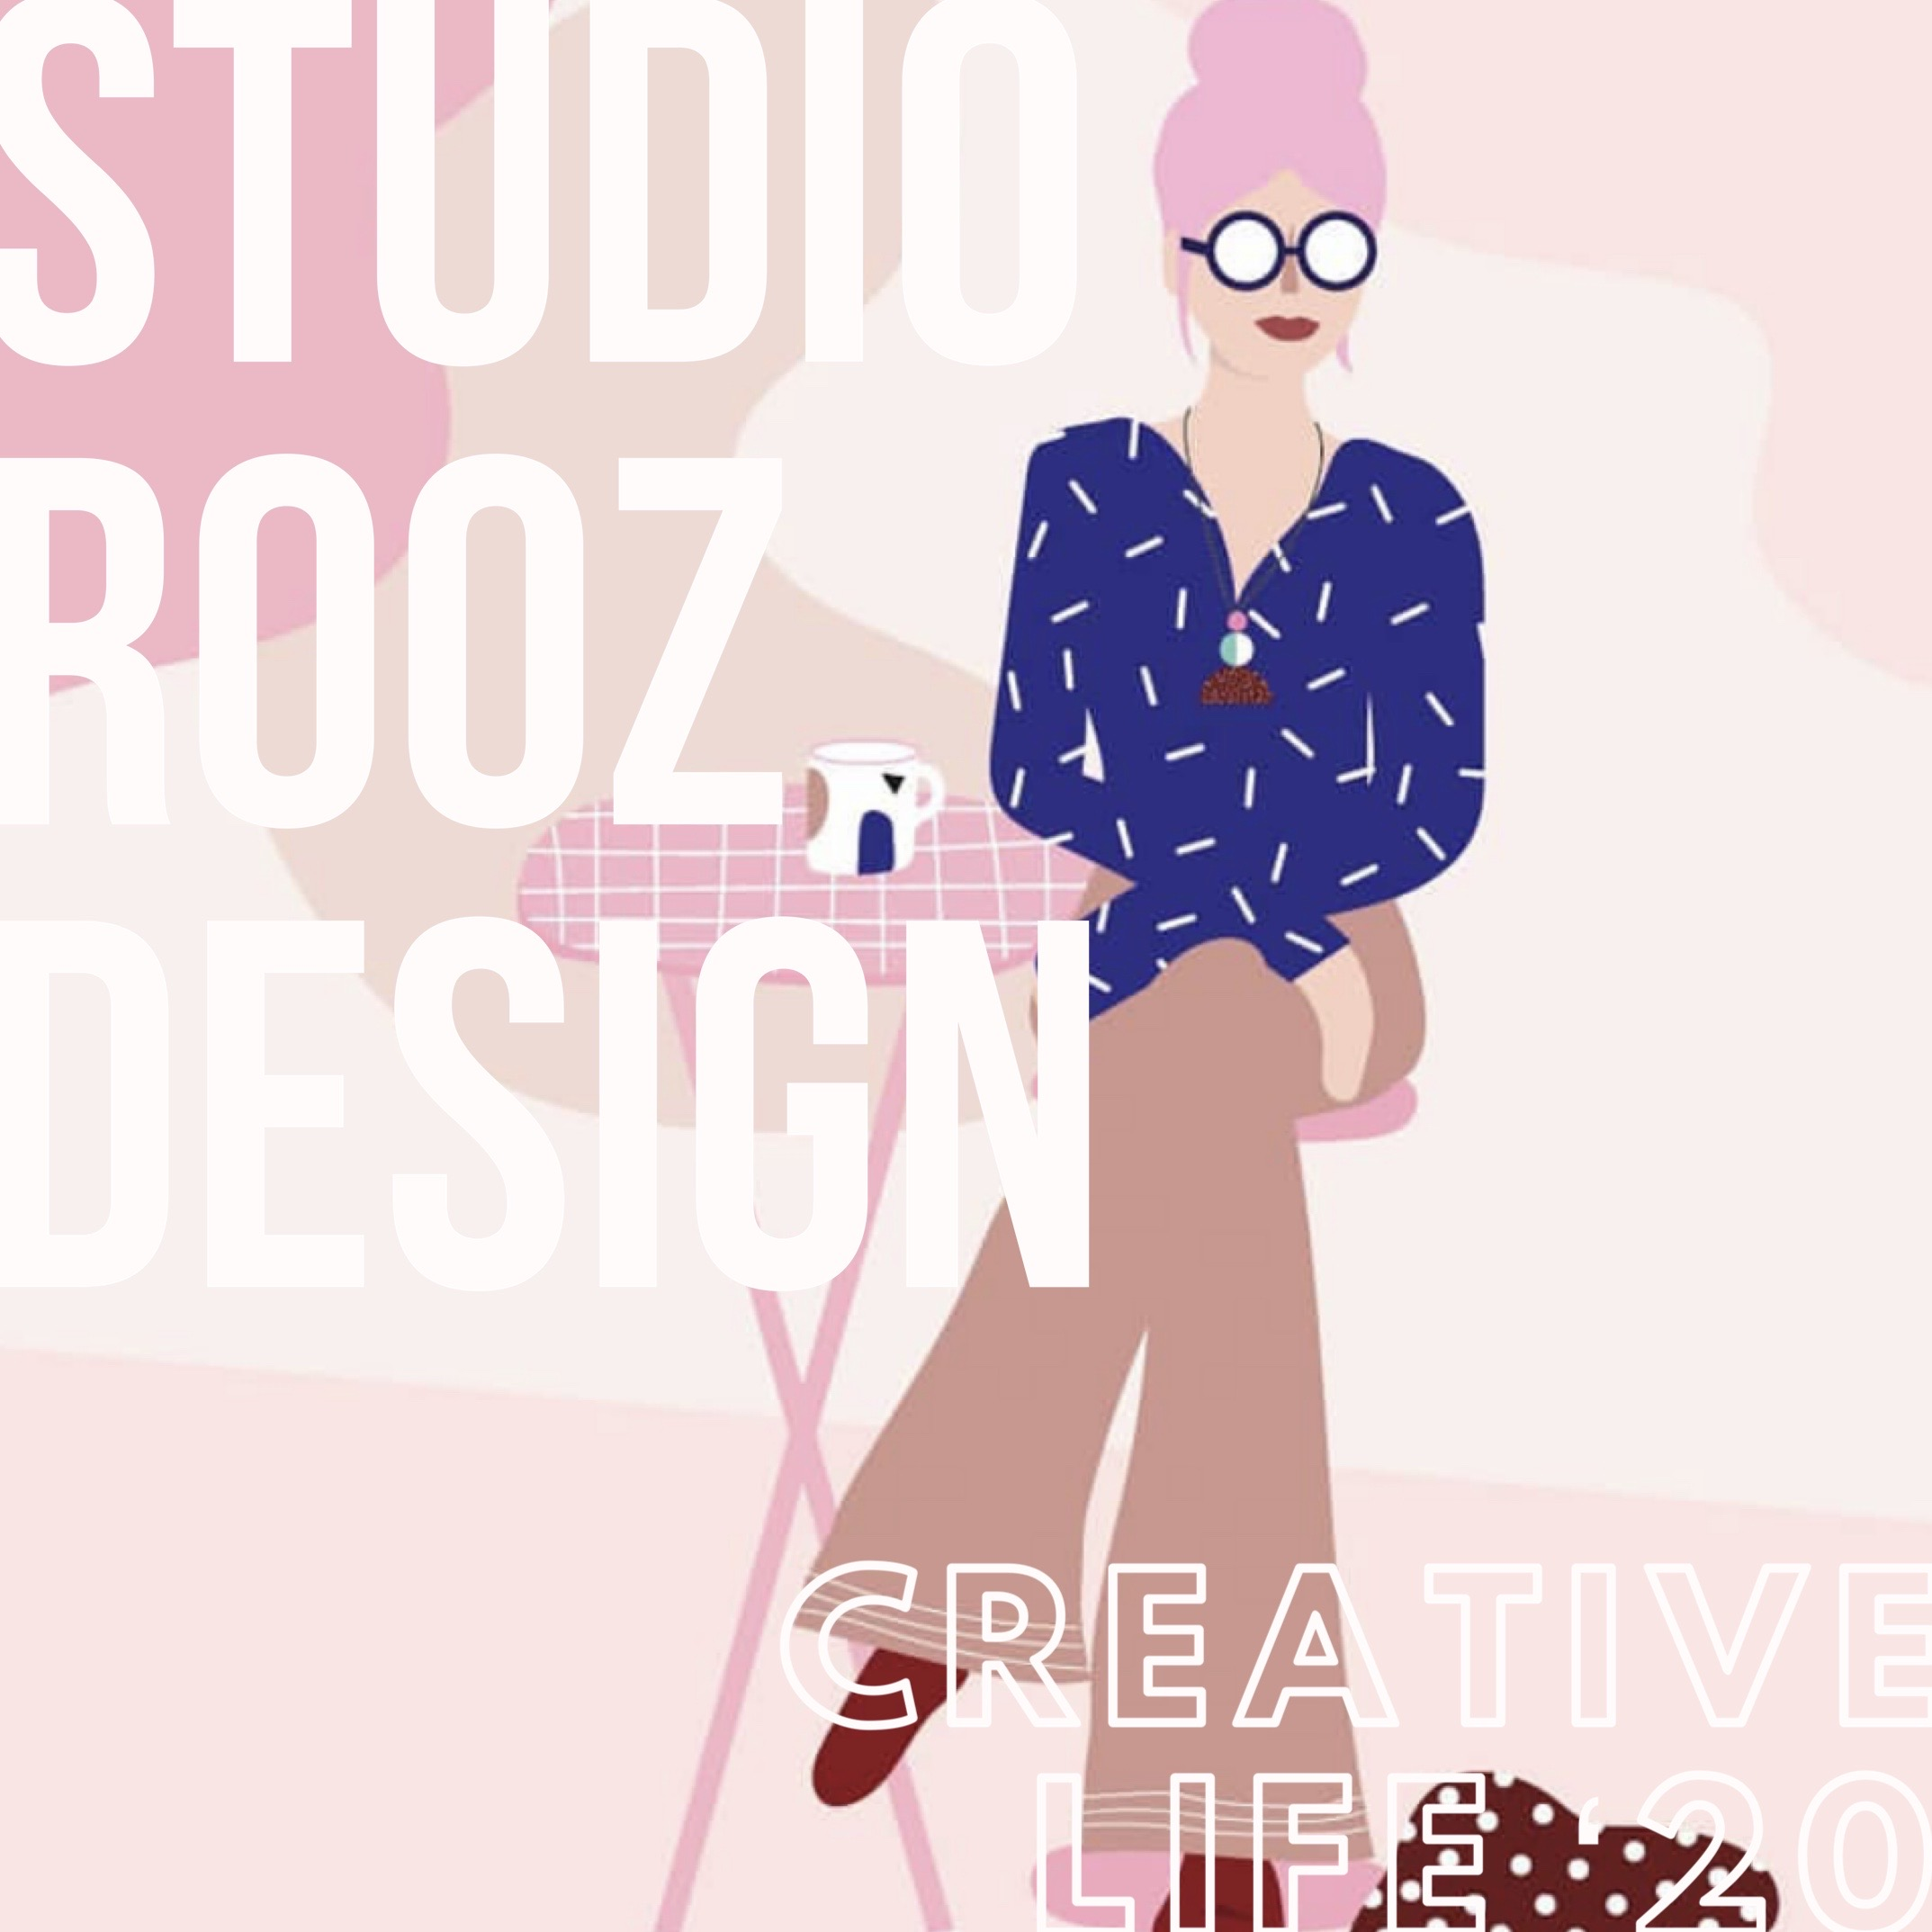 Studio Rooz Design